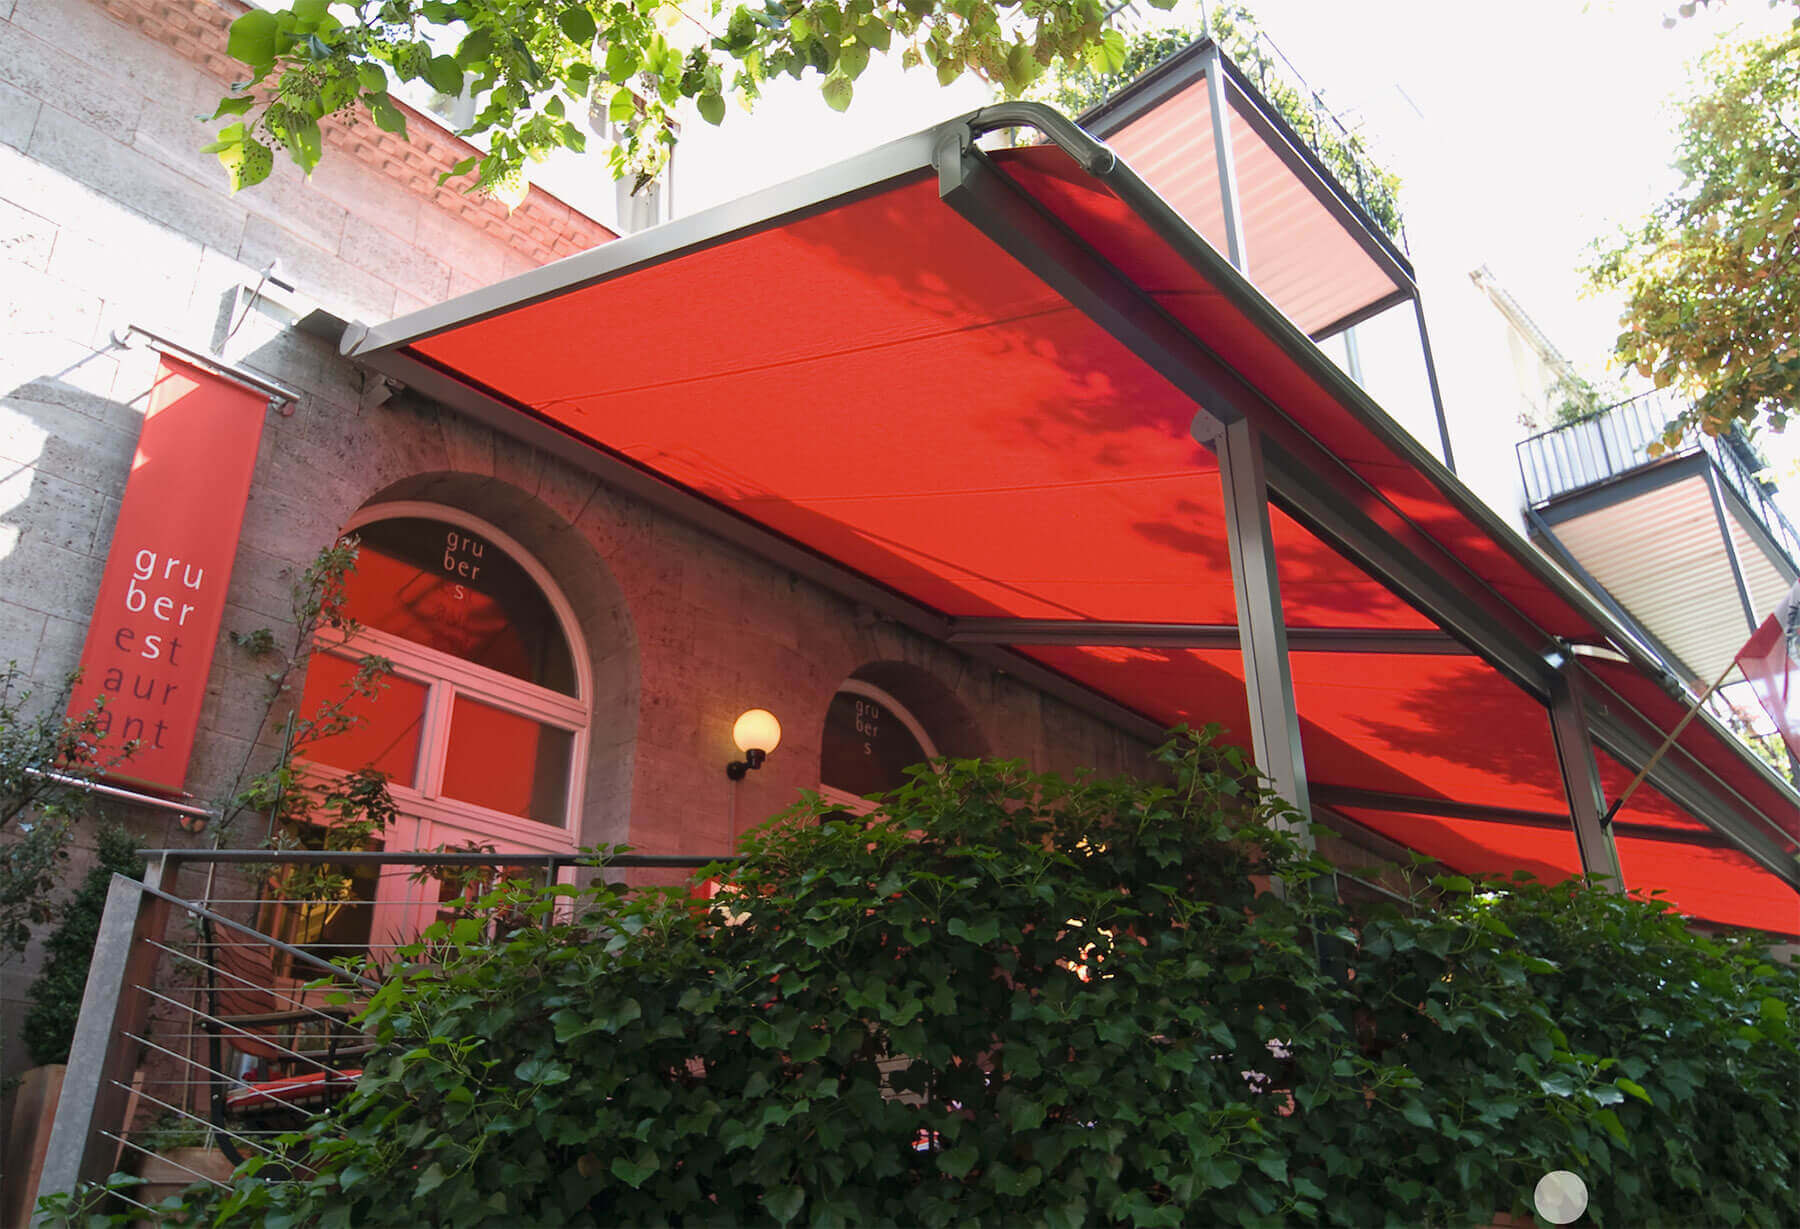 Awning in Plaza Instant Finance